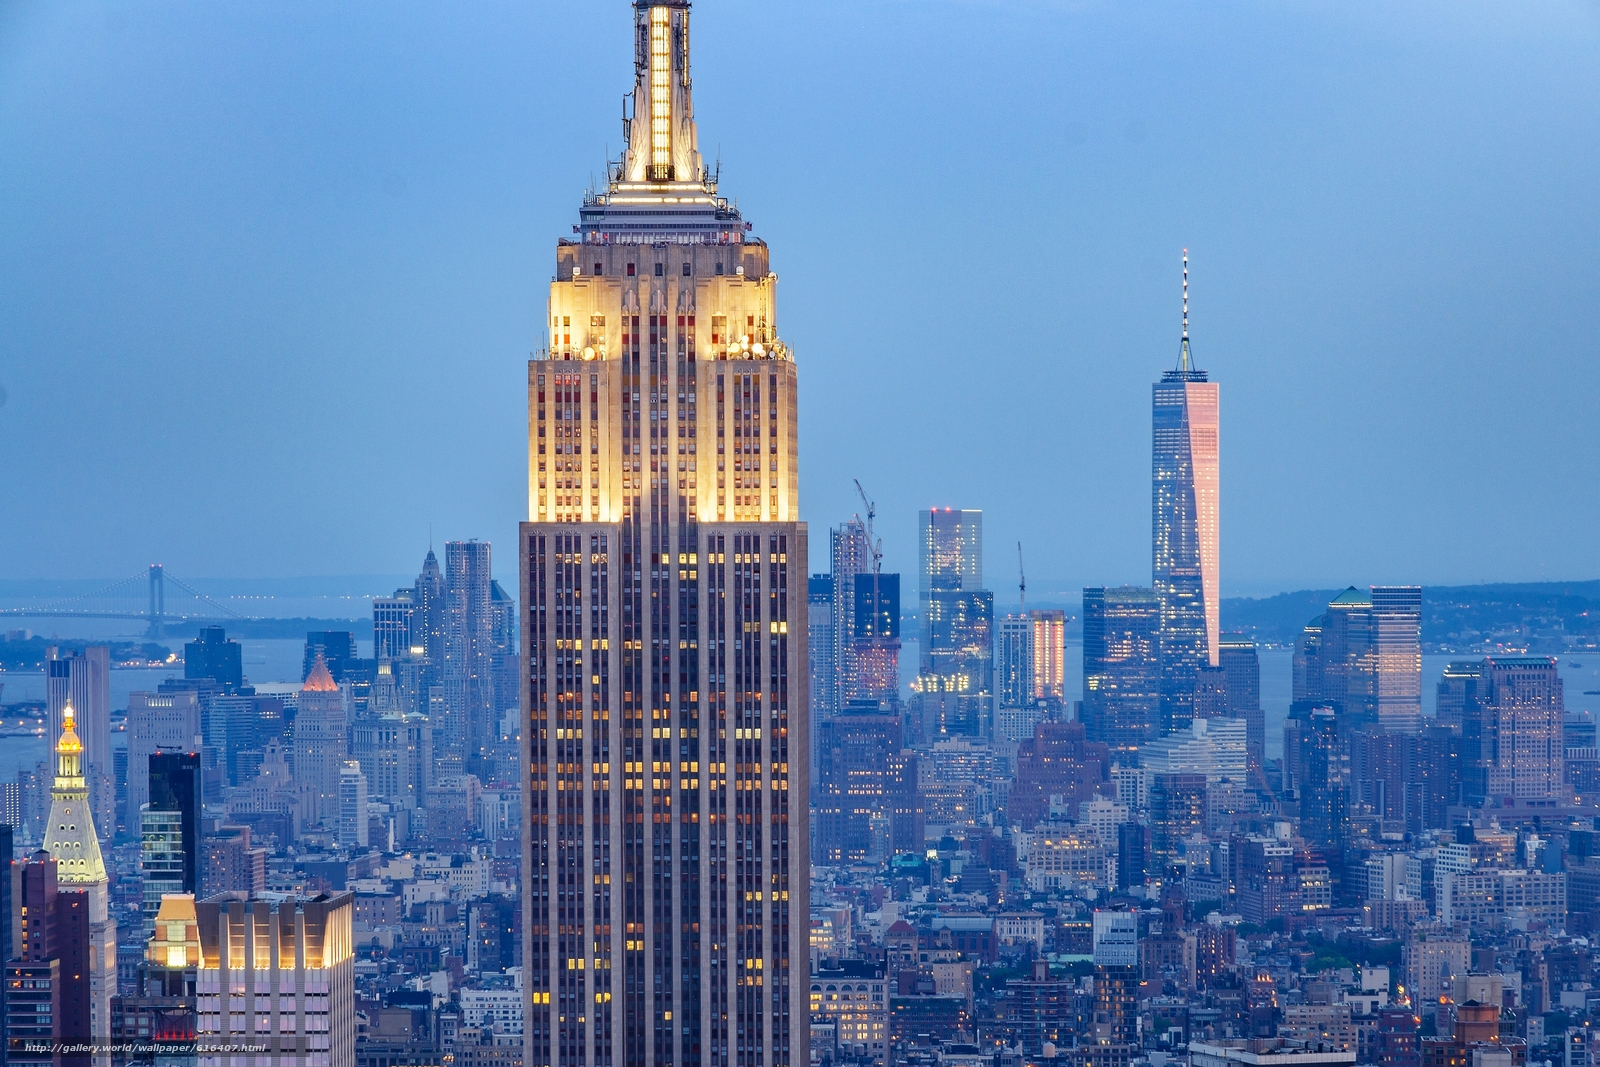 download wallpaper empire state building manhattan new york city